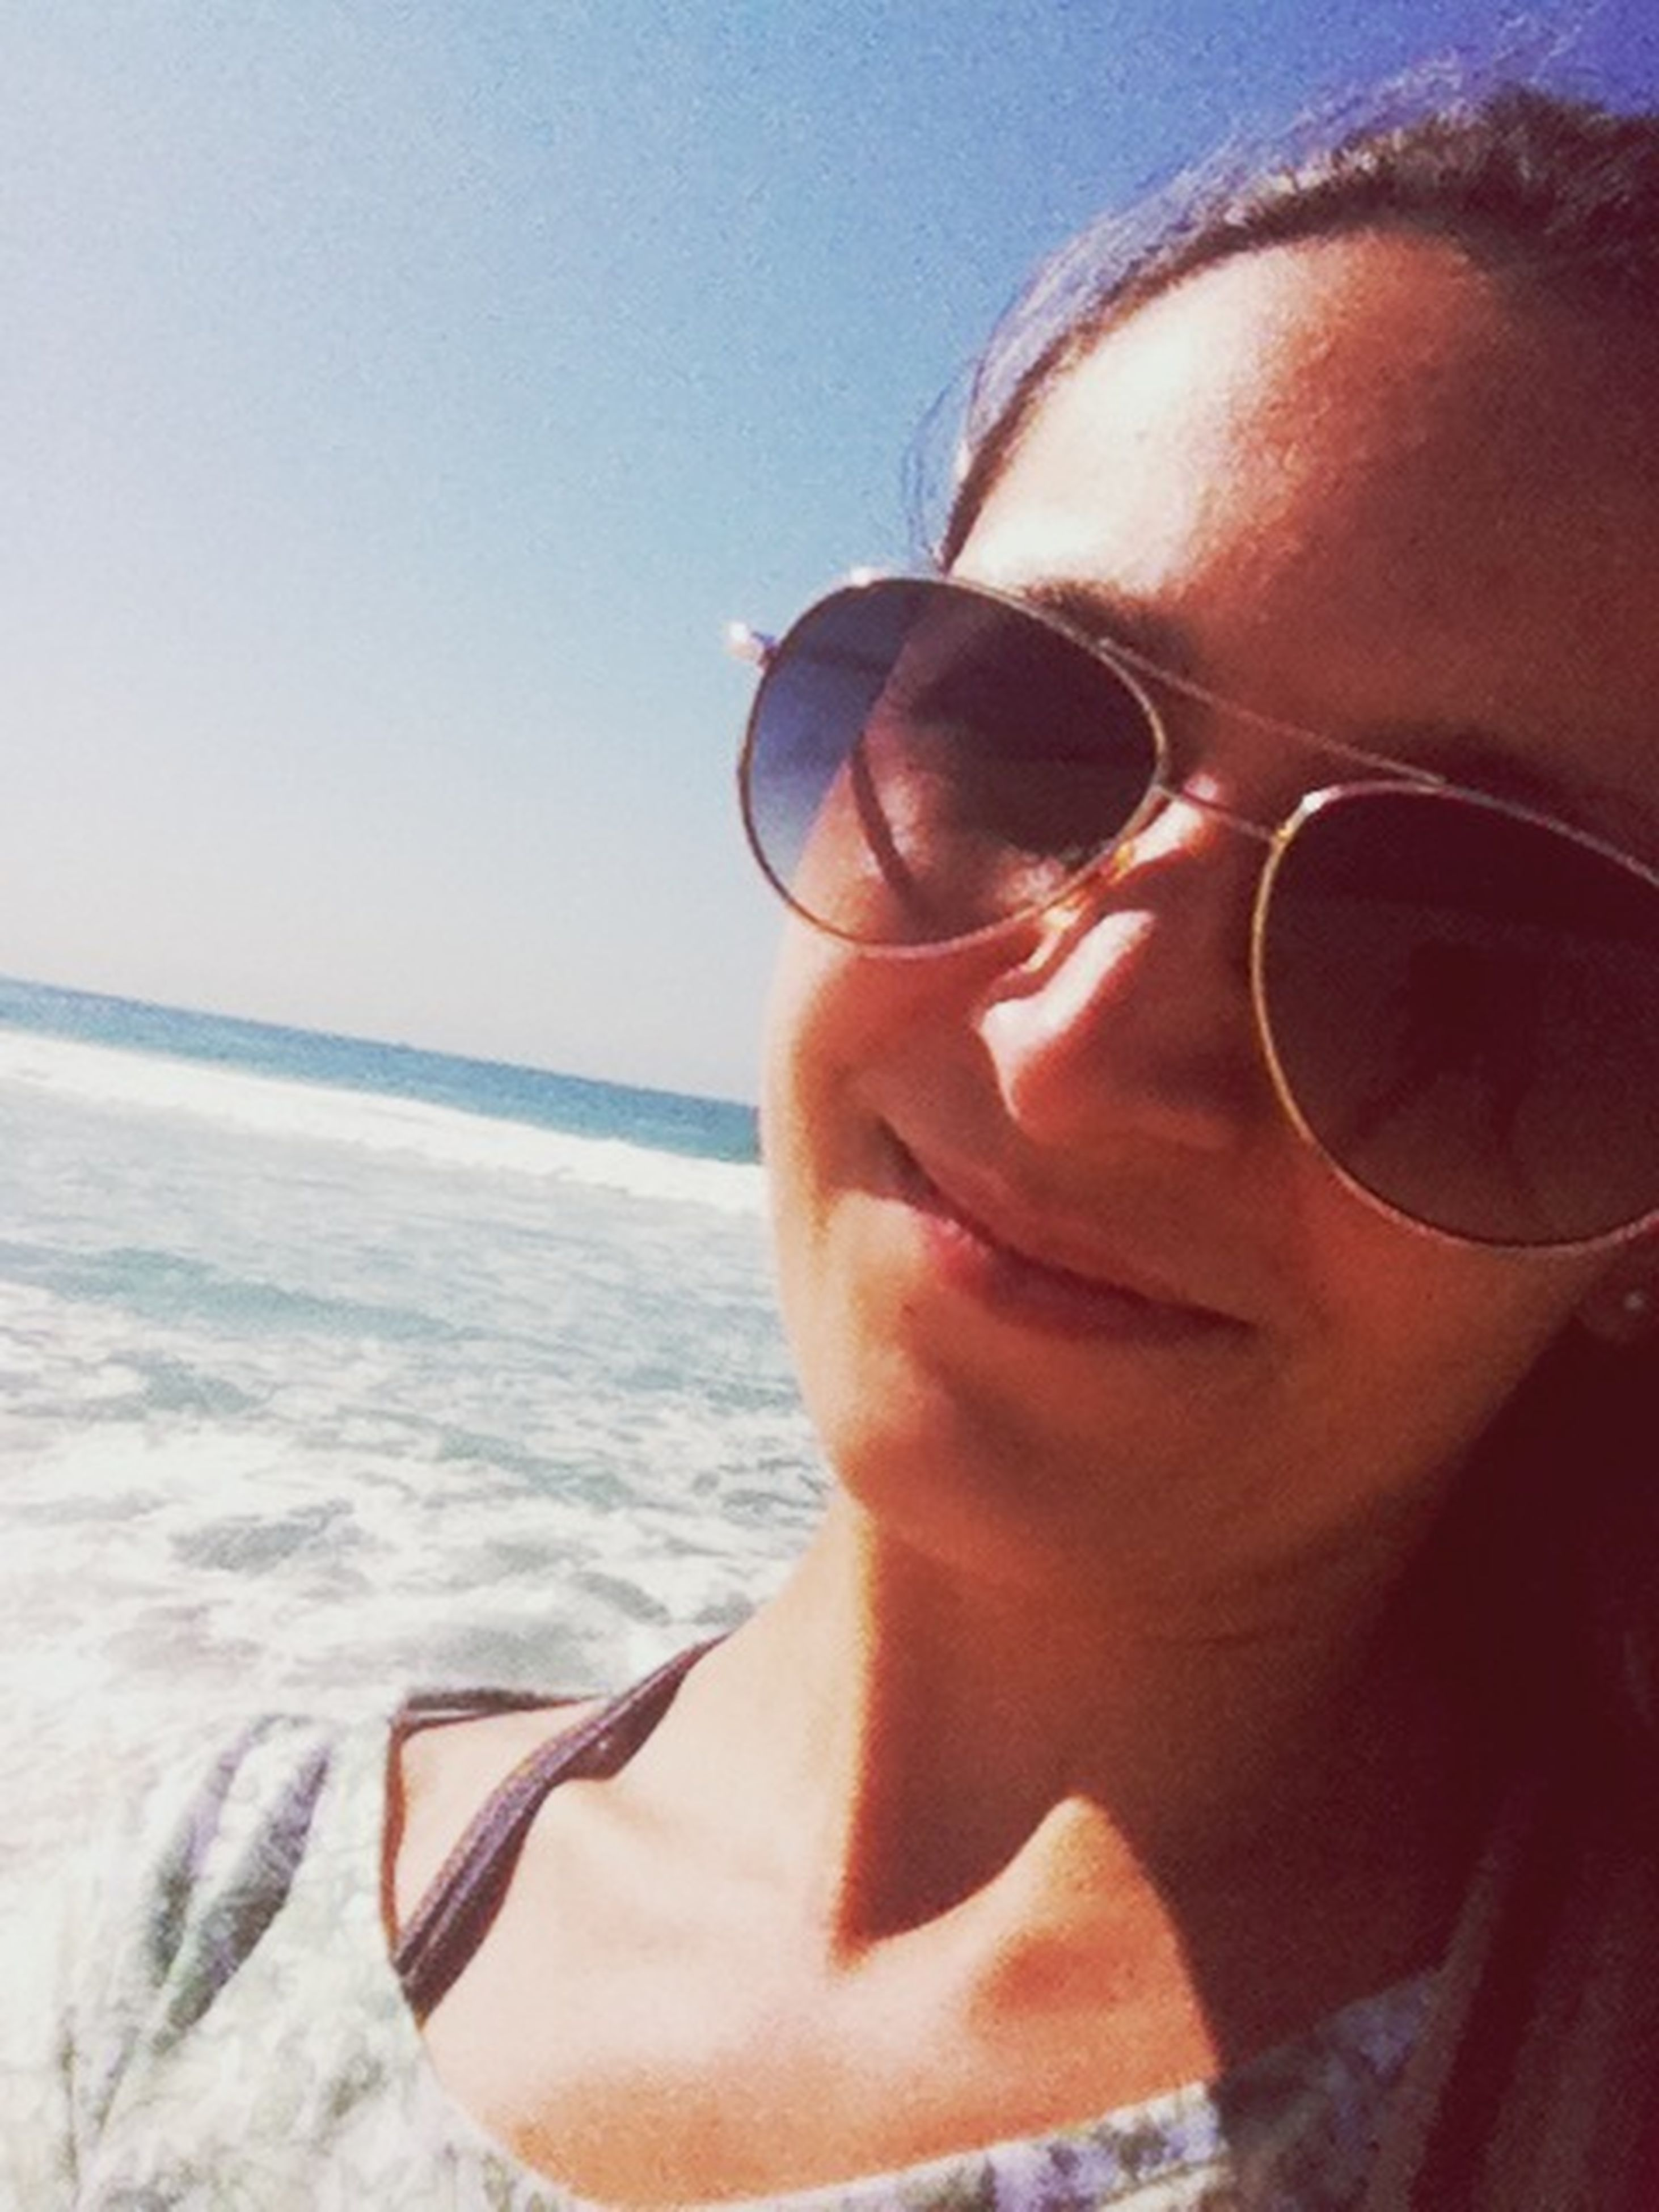 sunglasses, young adult, person, lifestyles, leisure activity, headshot, portrait, sea, looking at camera, beach, water, young women, sunlight, head and shoulders, front view, sky, vacations